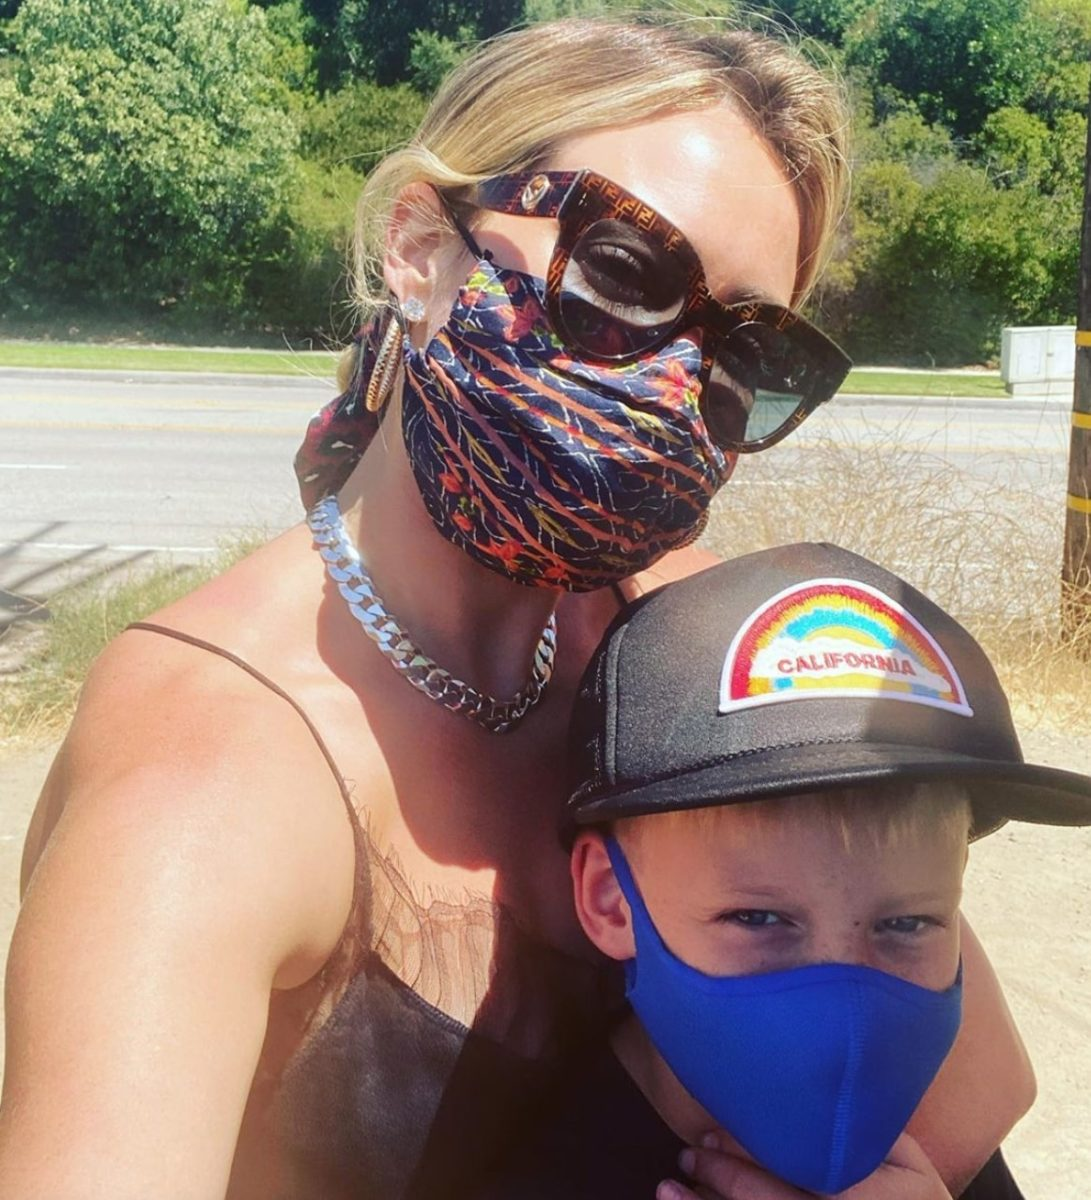 hilary duff's reaction son's $4 roblox request is relatable